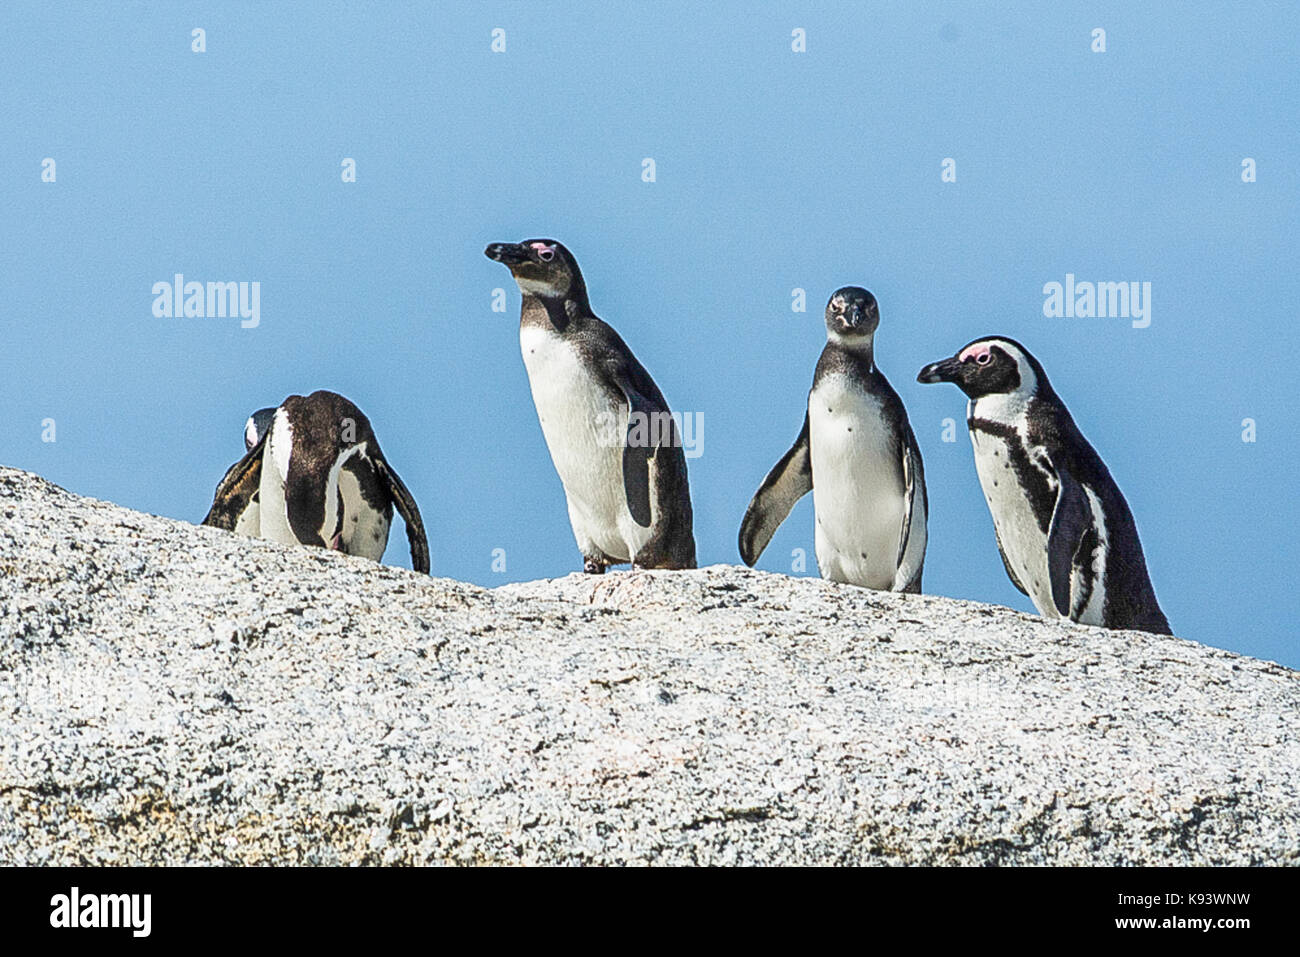 African penguins at Simon's Town, South Africa Stock Photo